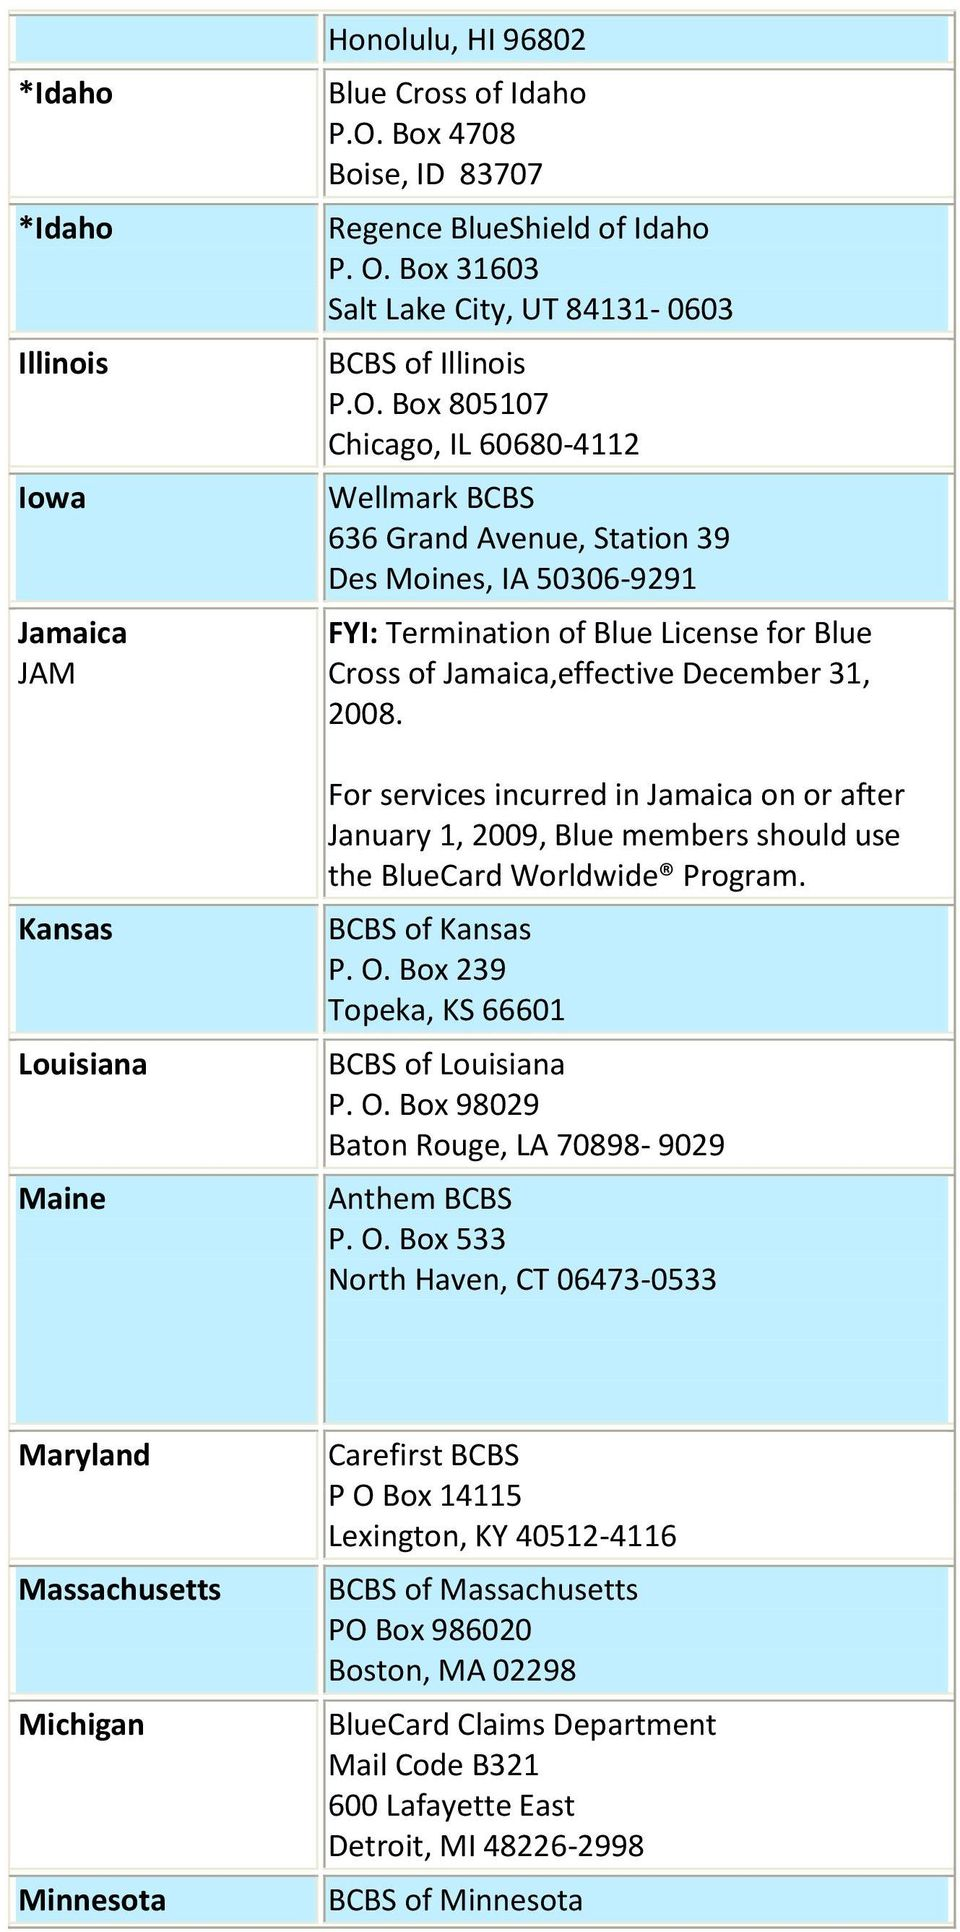 Box 805107 Chicago, IL 60680-4112 Wellmark BCBS 636 Grand Avenue, Station 39 Des Moines, IA 50306-9291 FYI: Termination of Blue License for Blue Cross of Jamaica,effective December 31, 2008.